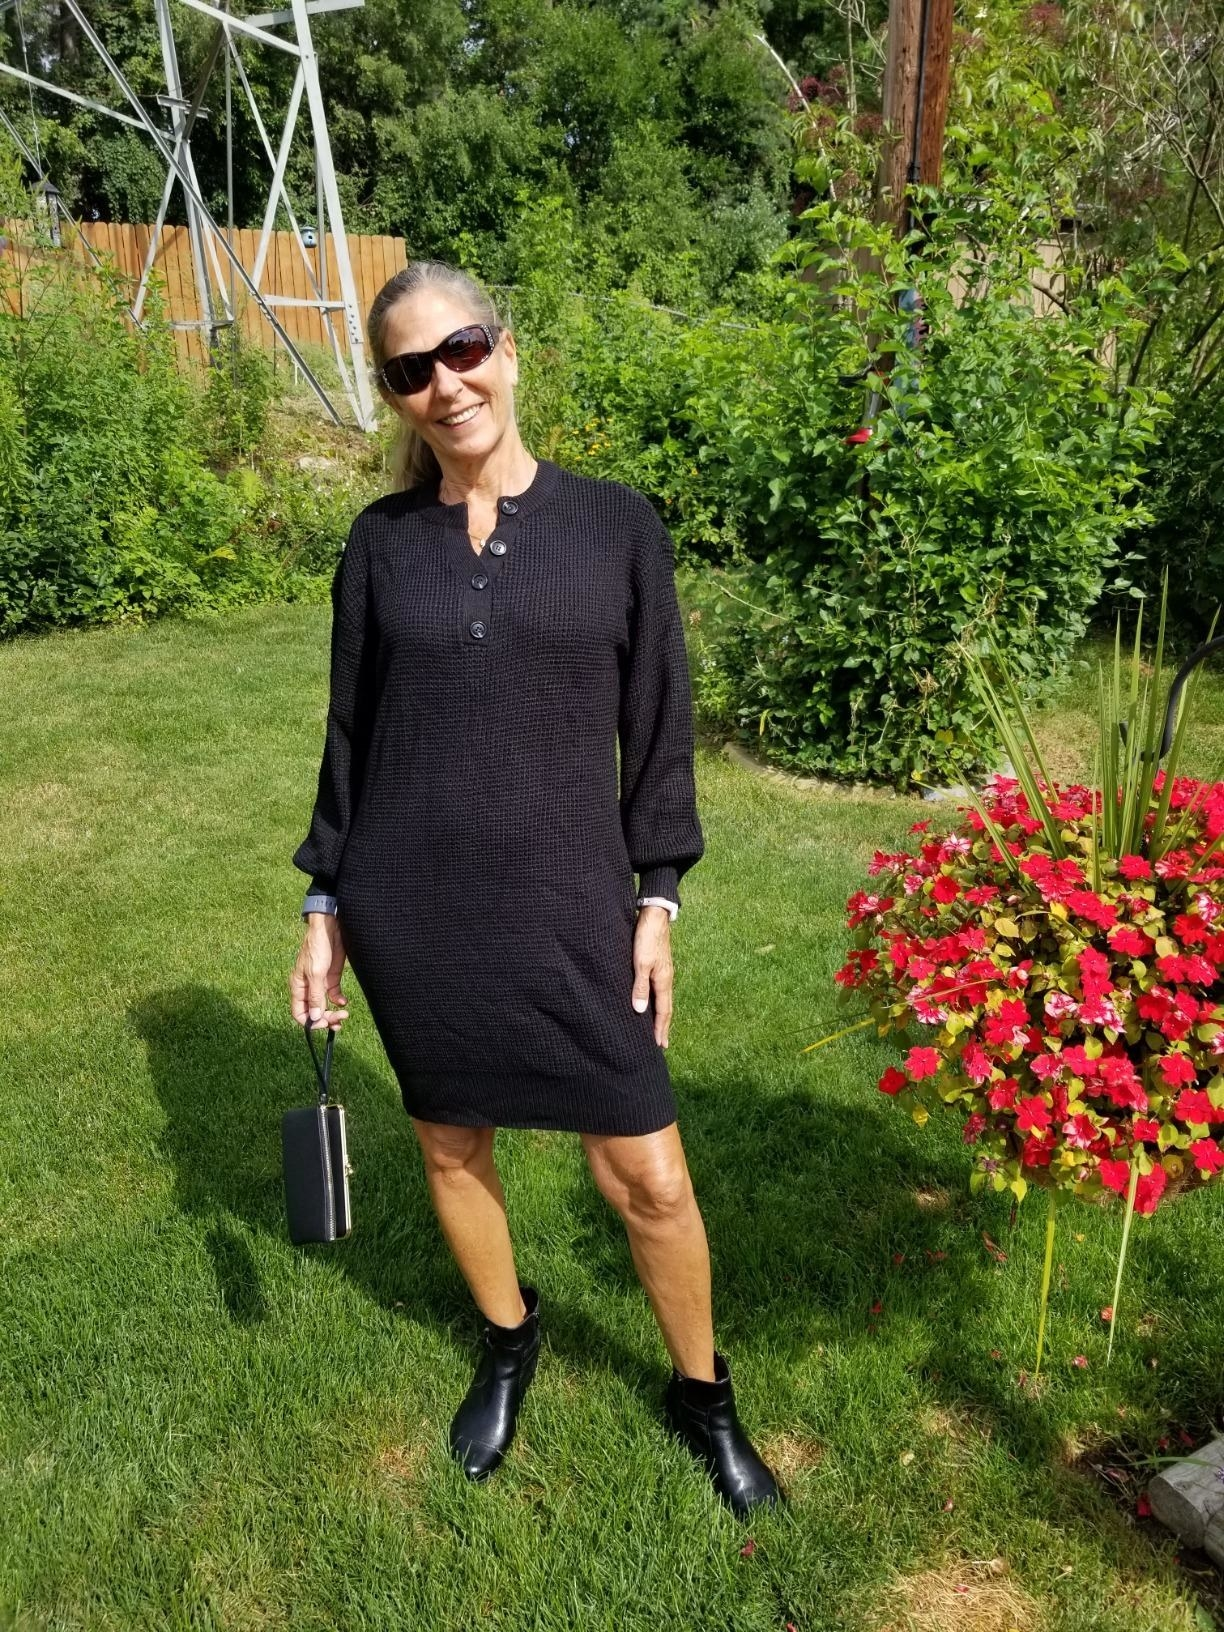 A reviewer wearing the knee-length dress in black